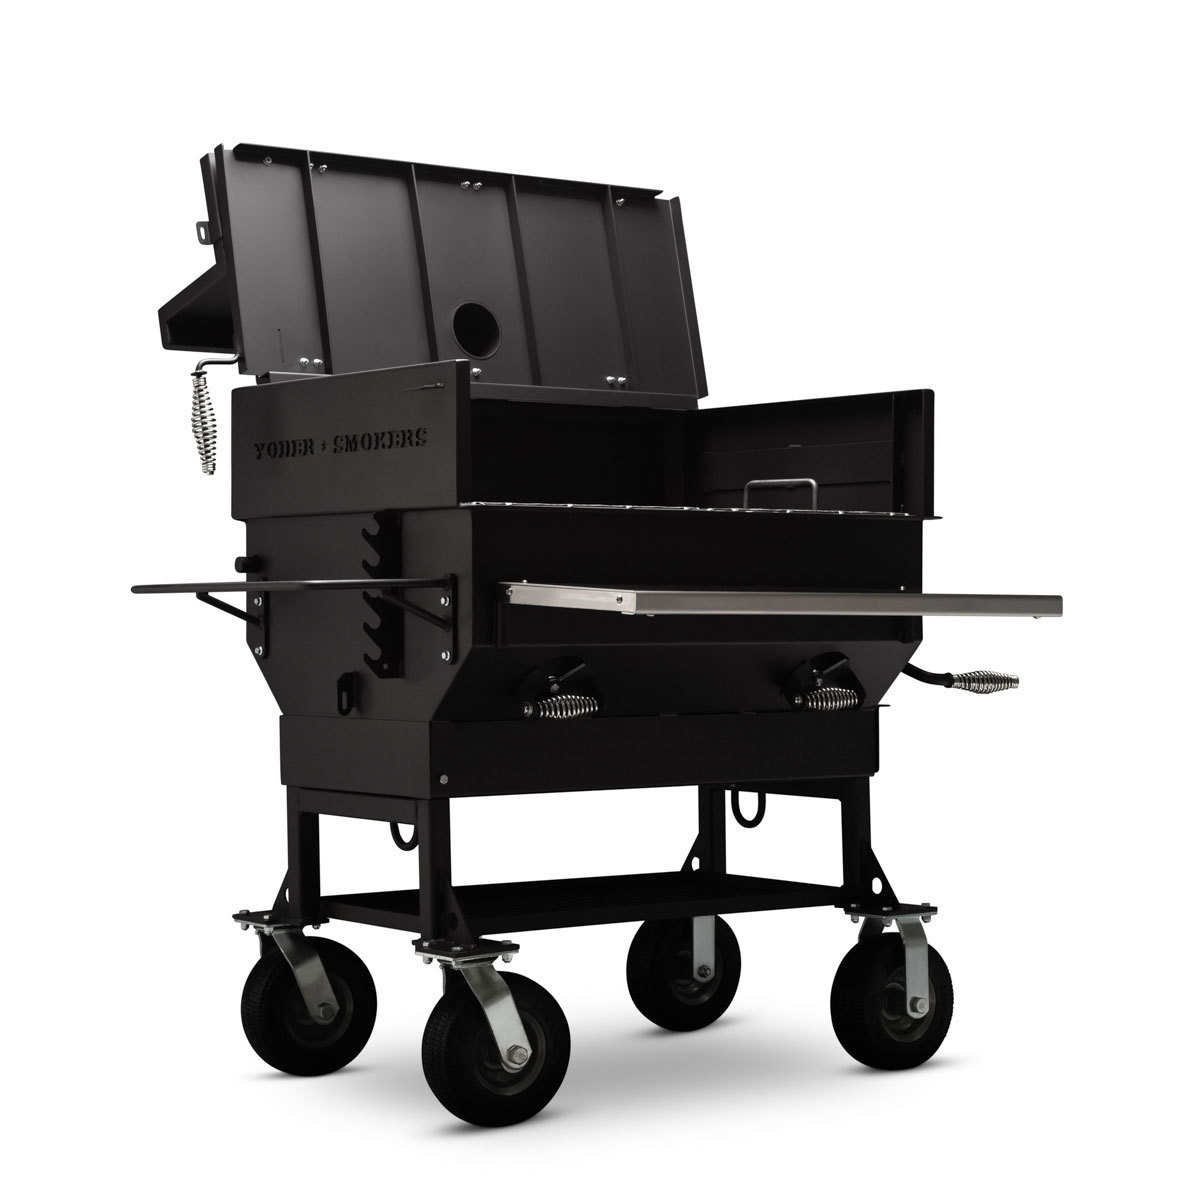 "The Yoder Smokers 24""x 36"" Charcoal Grill"